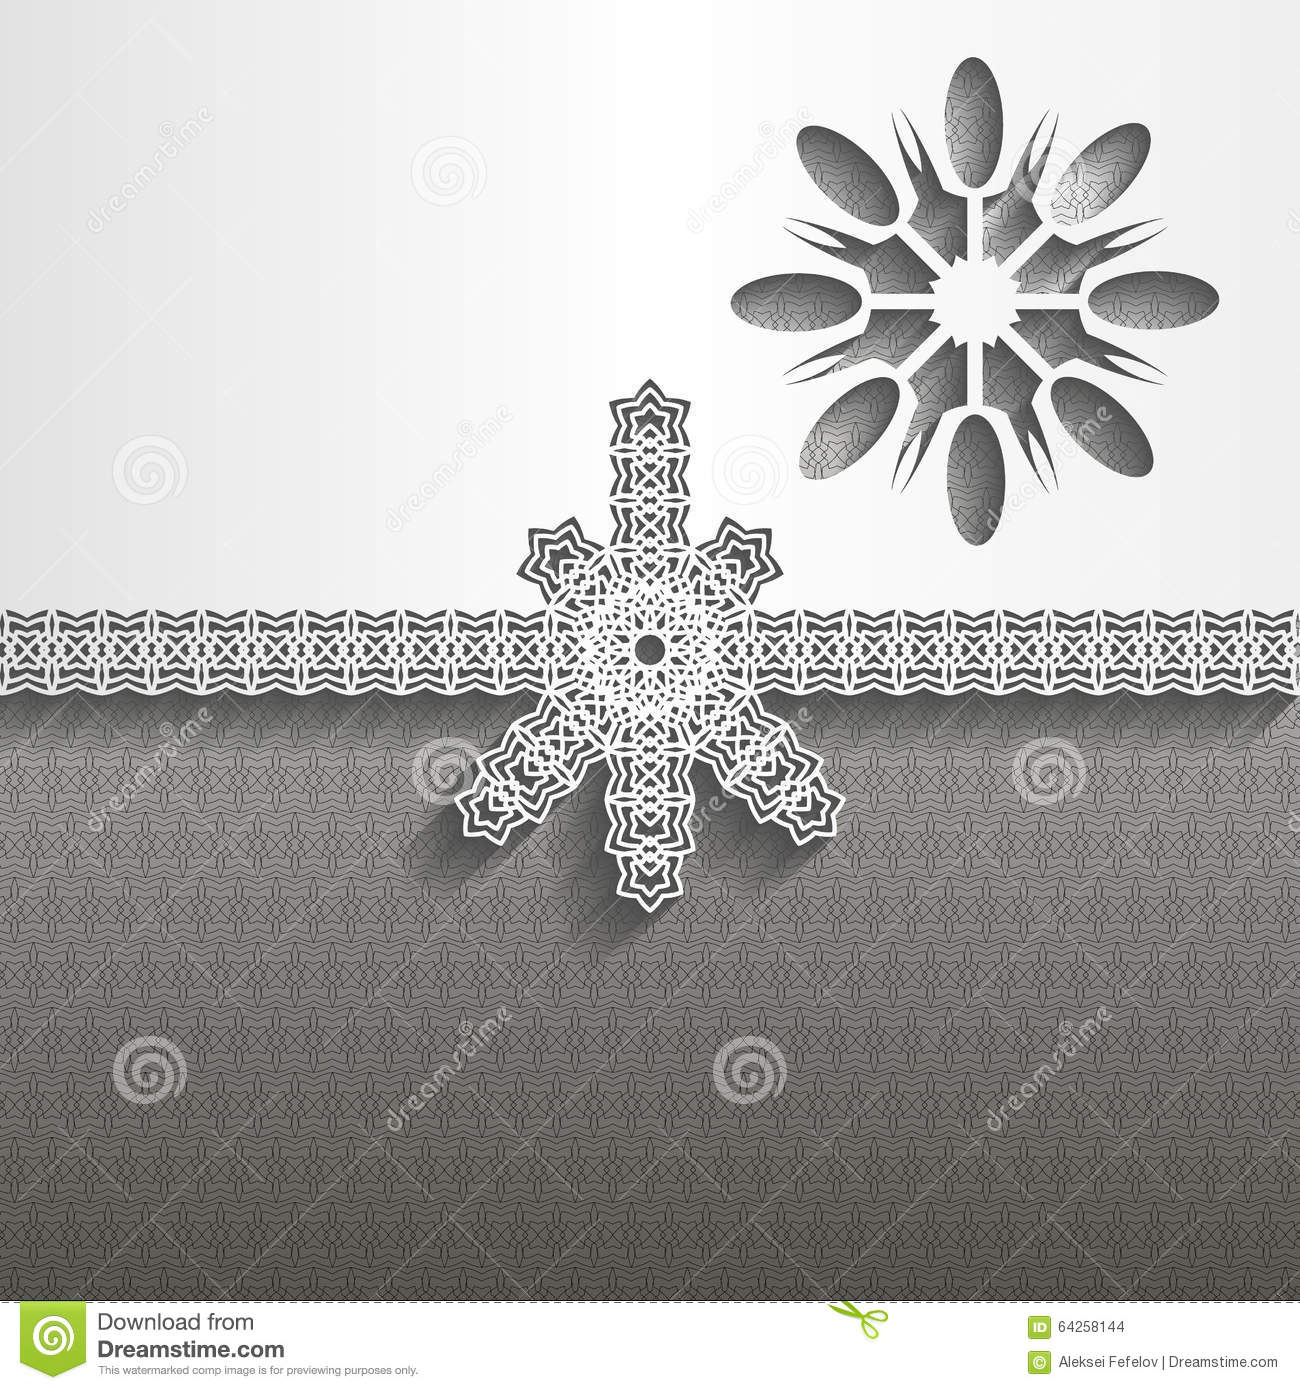 Template Greeting Card Royalty Free Stock Image: Paper Lace Greeting Card. Royalty-Free Stock Image